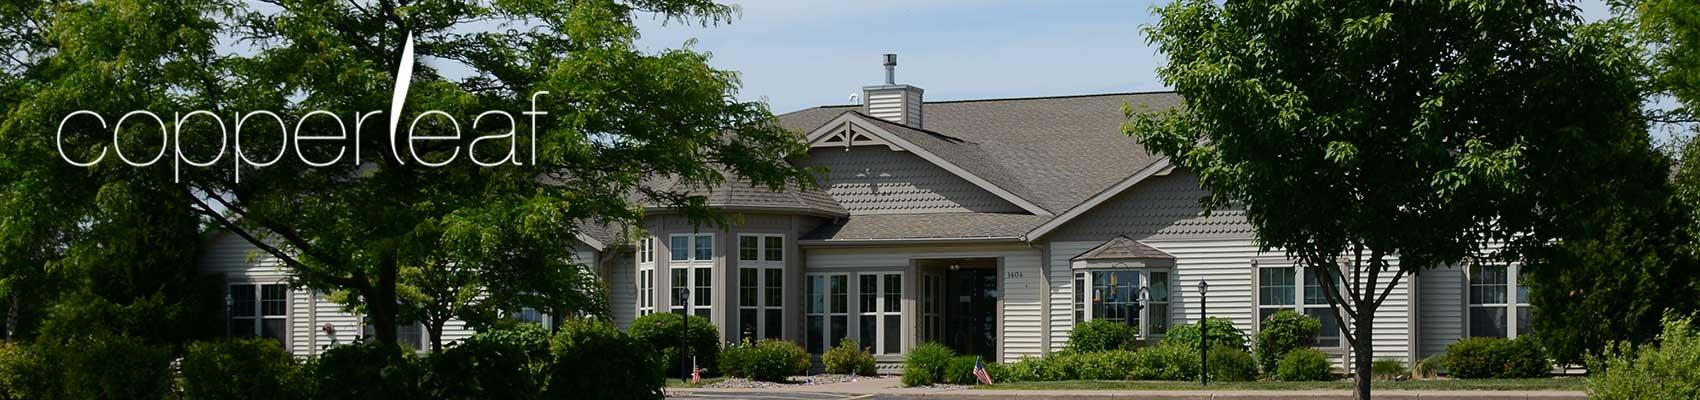 assisted living facilities in Garfield Wisconsin Portage County